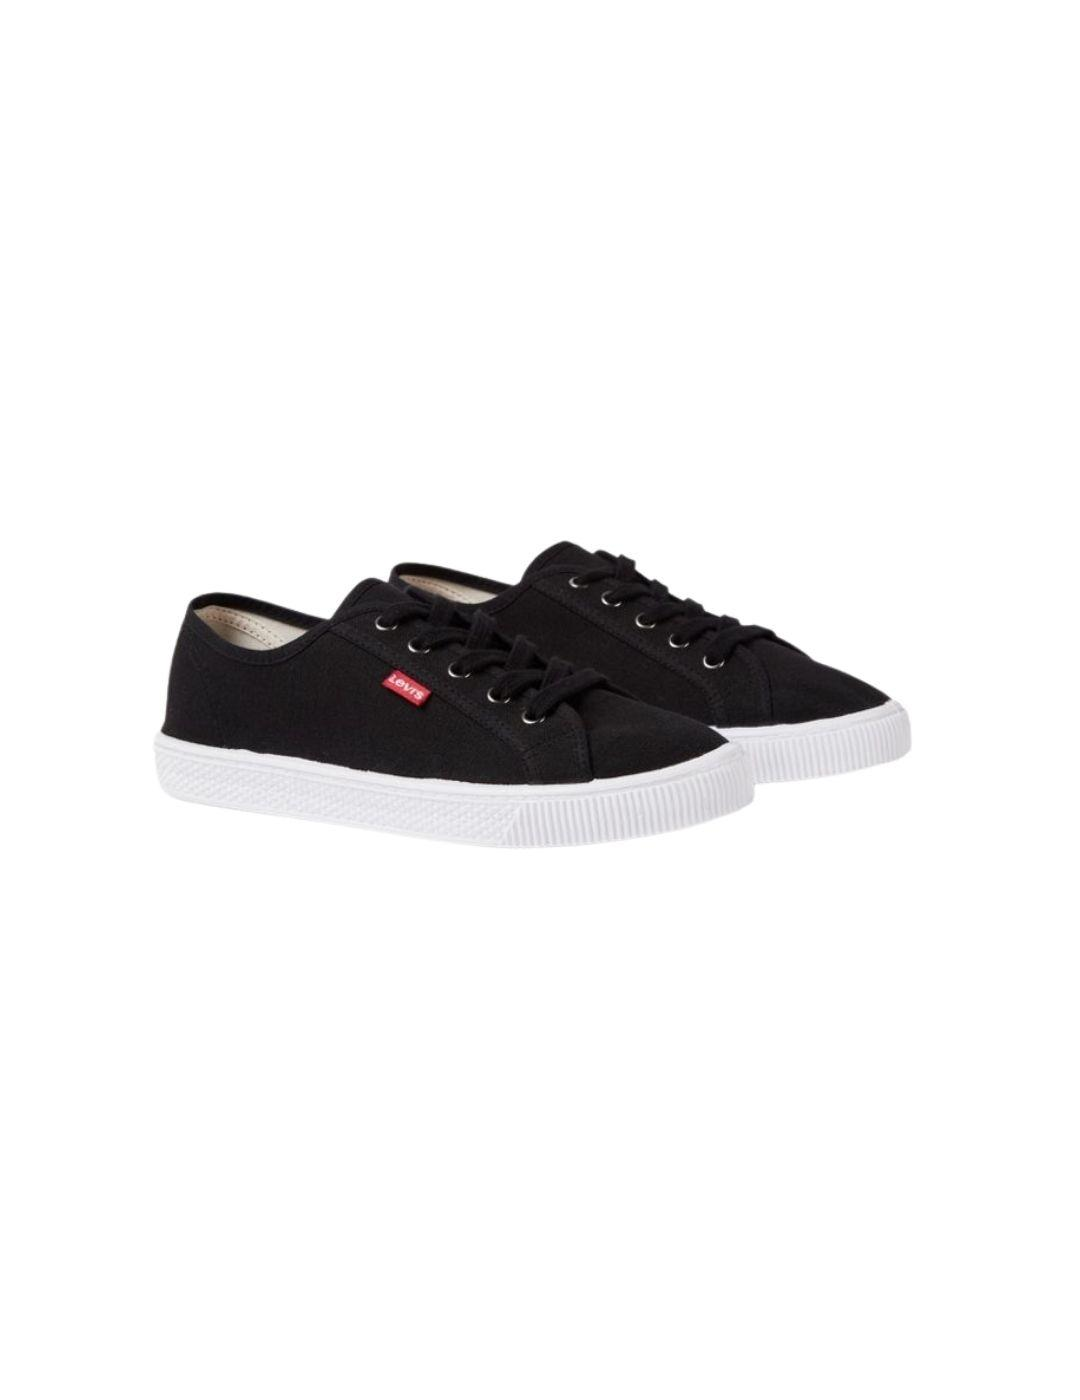 Zapatillas Levis Malibu Beach Sneakers Regular Black